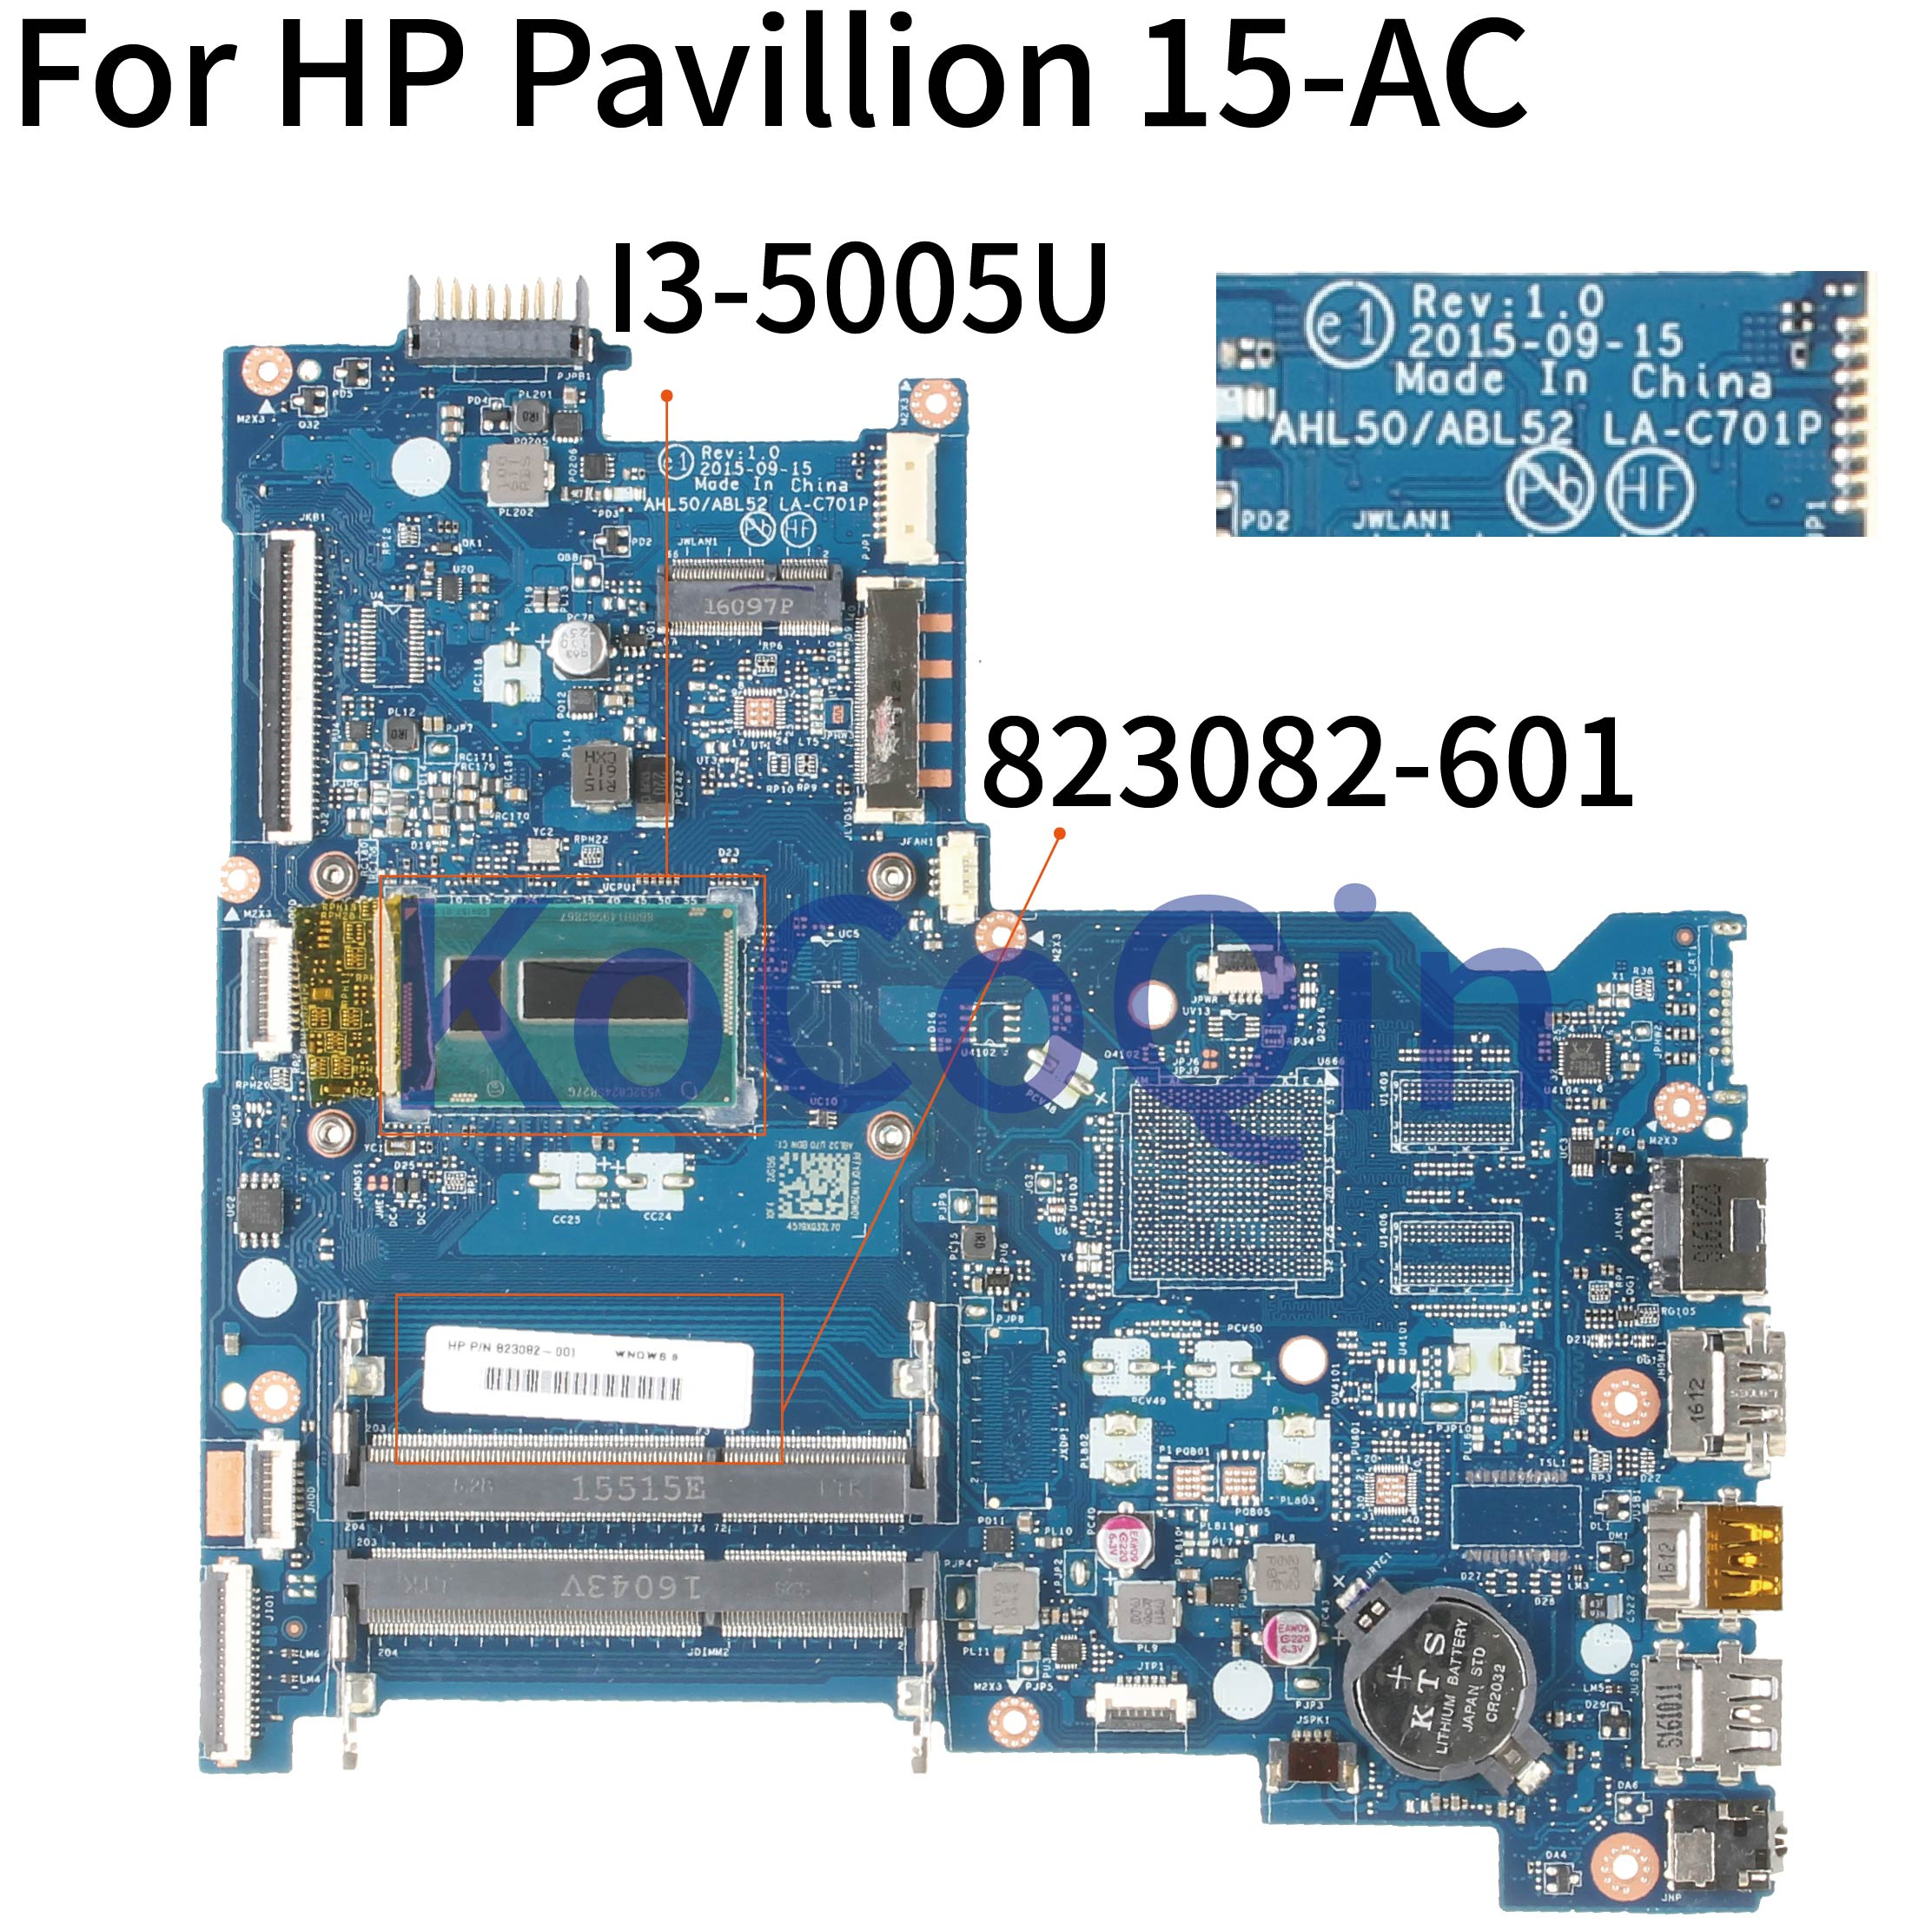 KoCoQin Laptop motherboard For HP Pavillion 15-AC 250 G4 I3-5005U <font><b>SR27G</b></font> Mainboard 823082-601 822041-001 822041-601 LA-C701P image